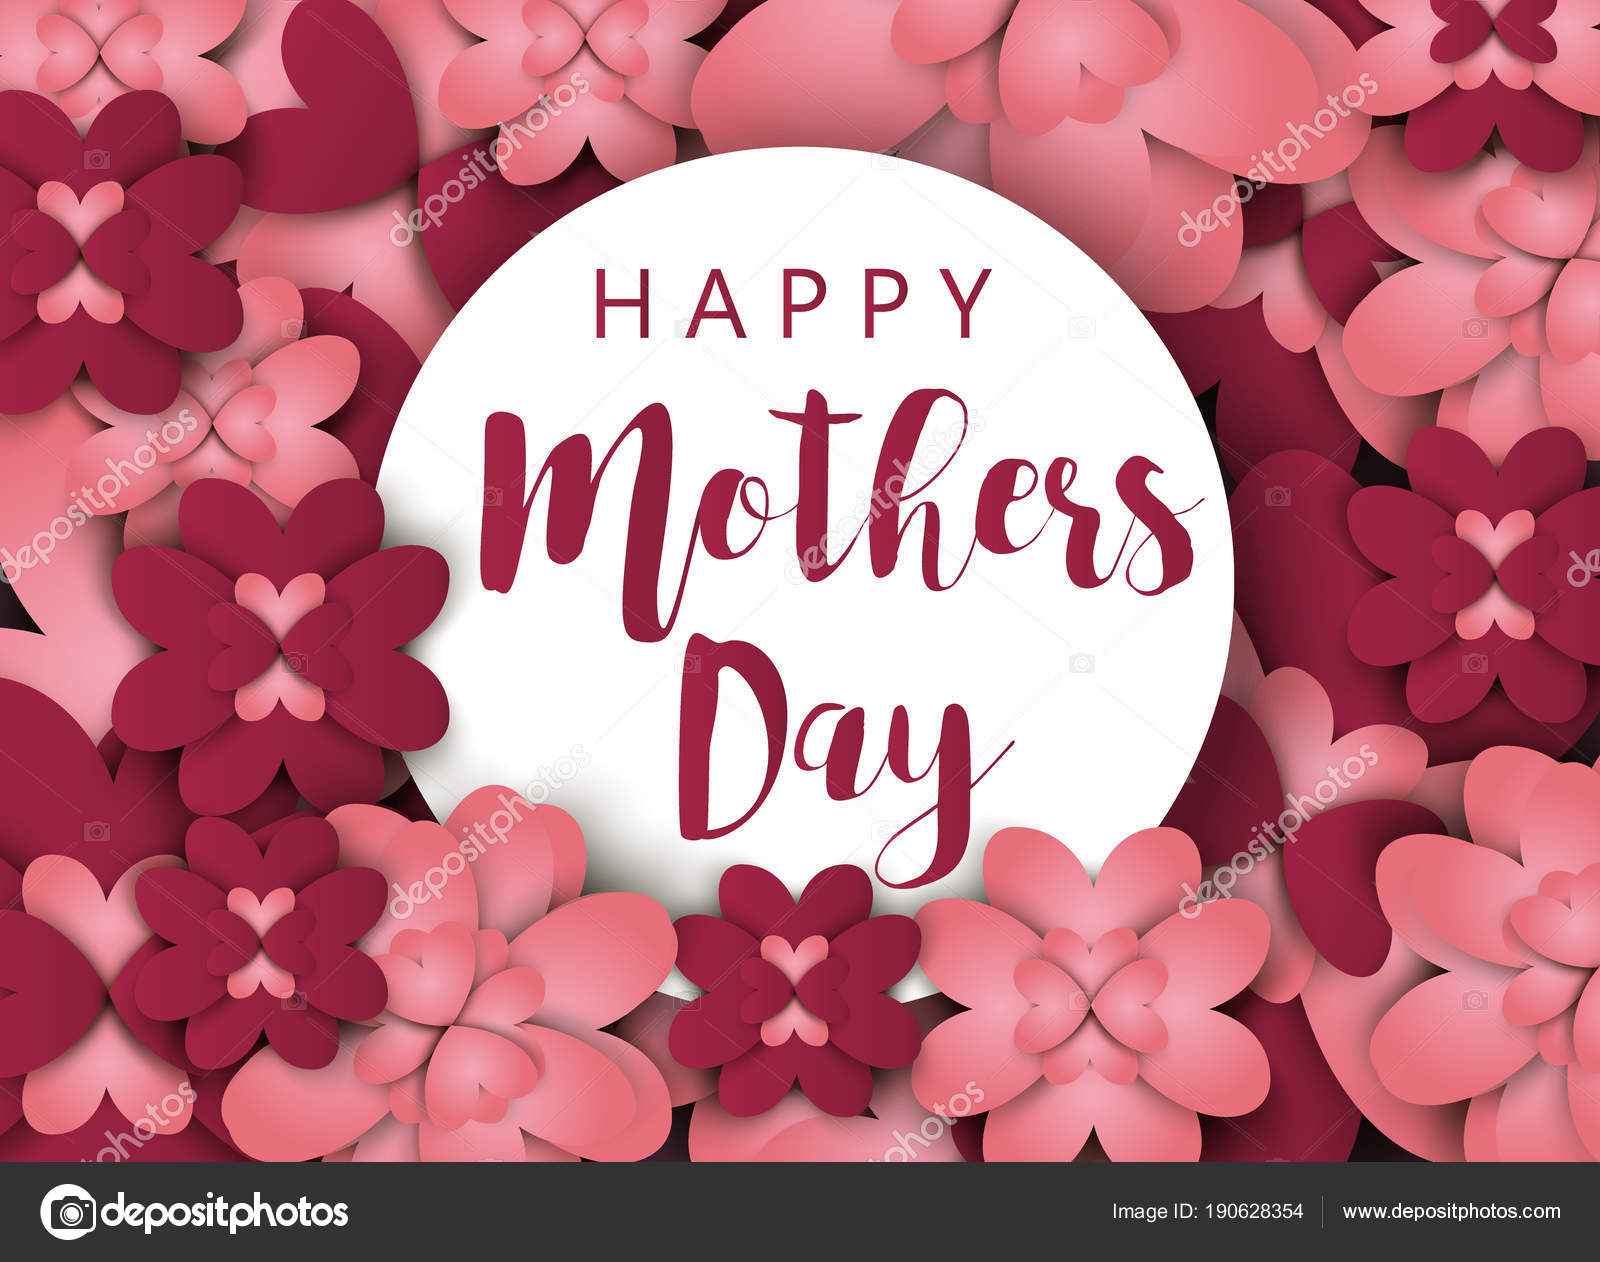 Mothers day card happy mom greeting background vector flower mothers day card happy mom greeting background vector flower invitation mommy holiday spring flora illustration m4hsunfo